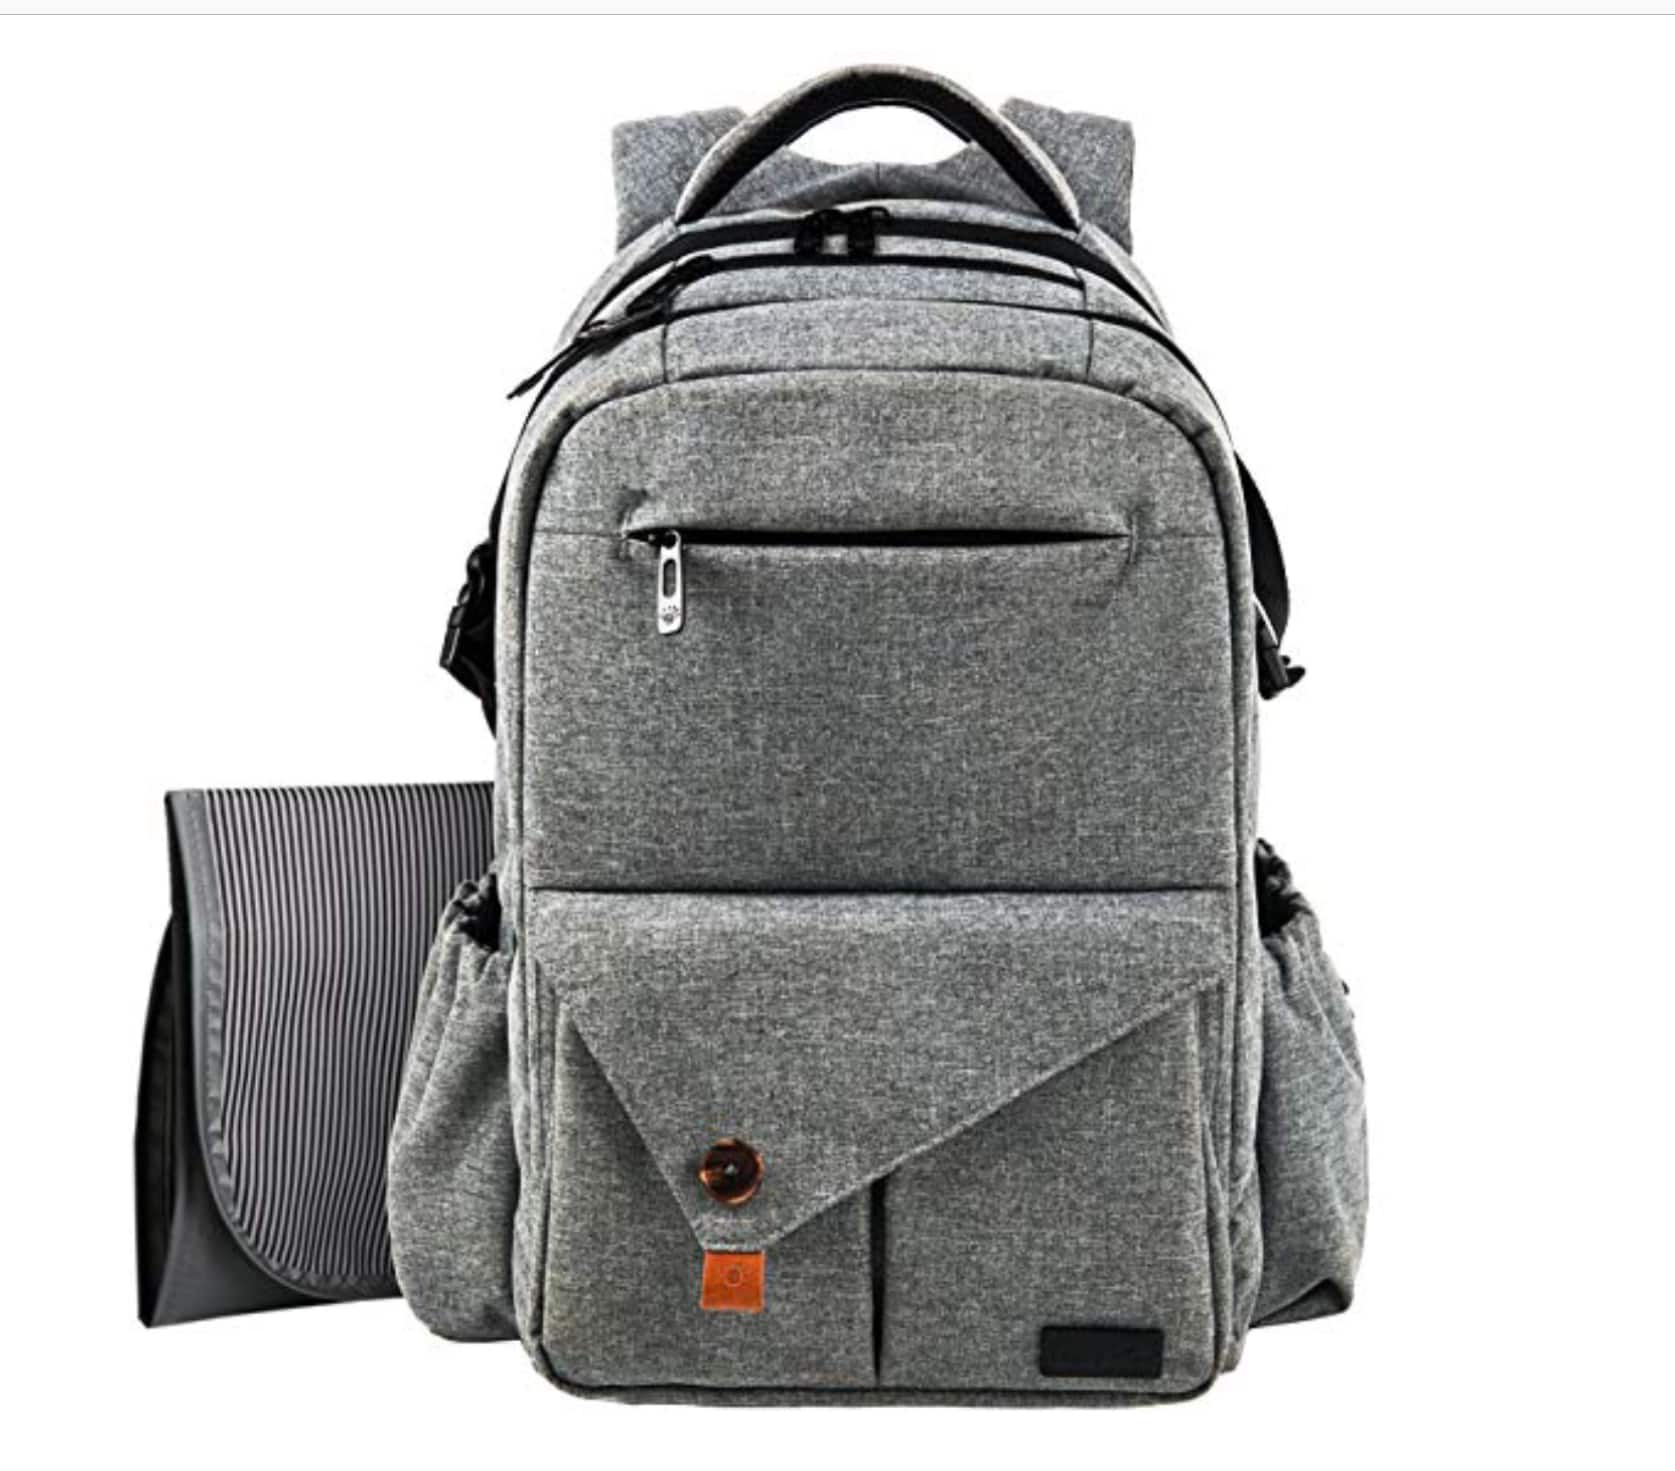 Large multi-functional diaper bag backpack $23.50 at Amazon.com